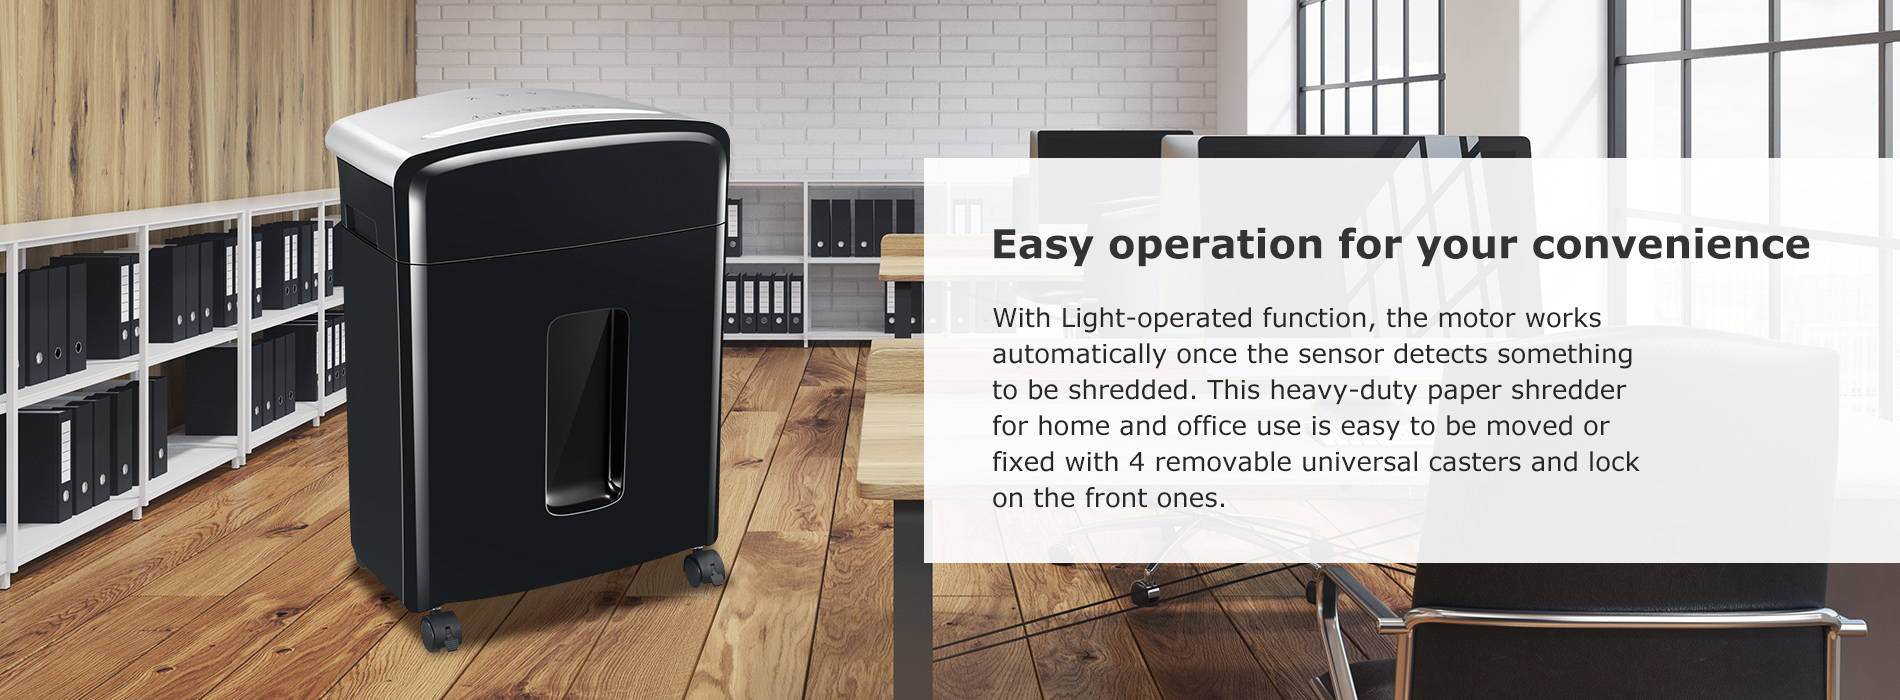 Easy operation for your convenience   With Light-operated function, the motor works automatically once the sensor detects something to be shredded. This heavy-duty paper shredder for home and office use is easy to be moved or fixed with 4 removable universal casters and lock on the front ones.